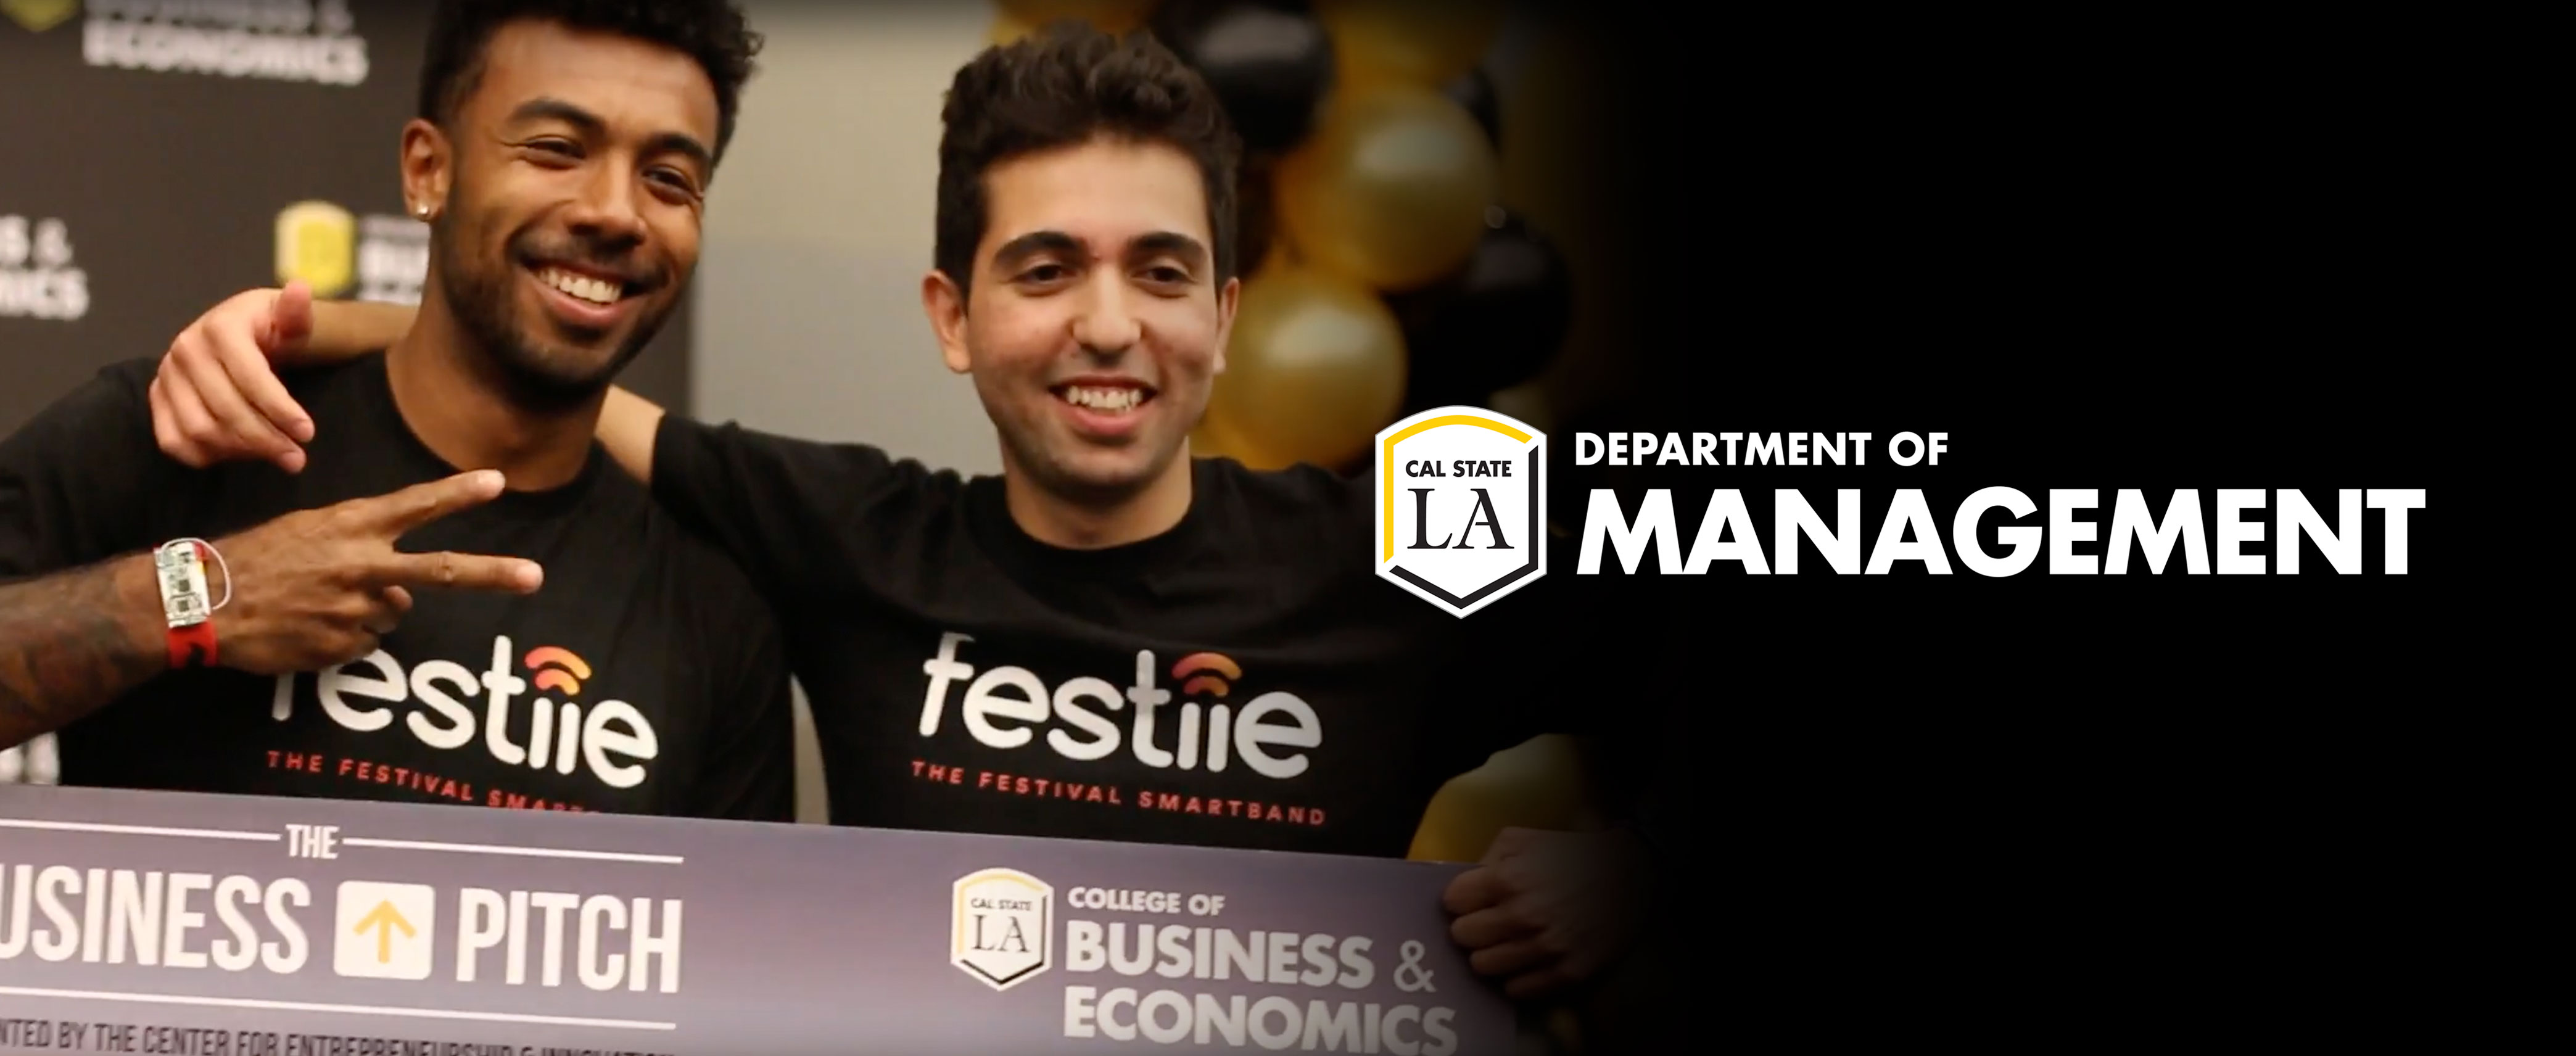 Cal State LA College of Business & Economics   Department of Managements